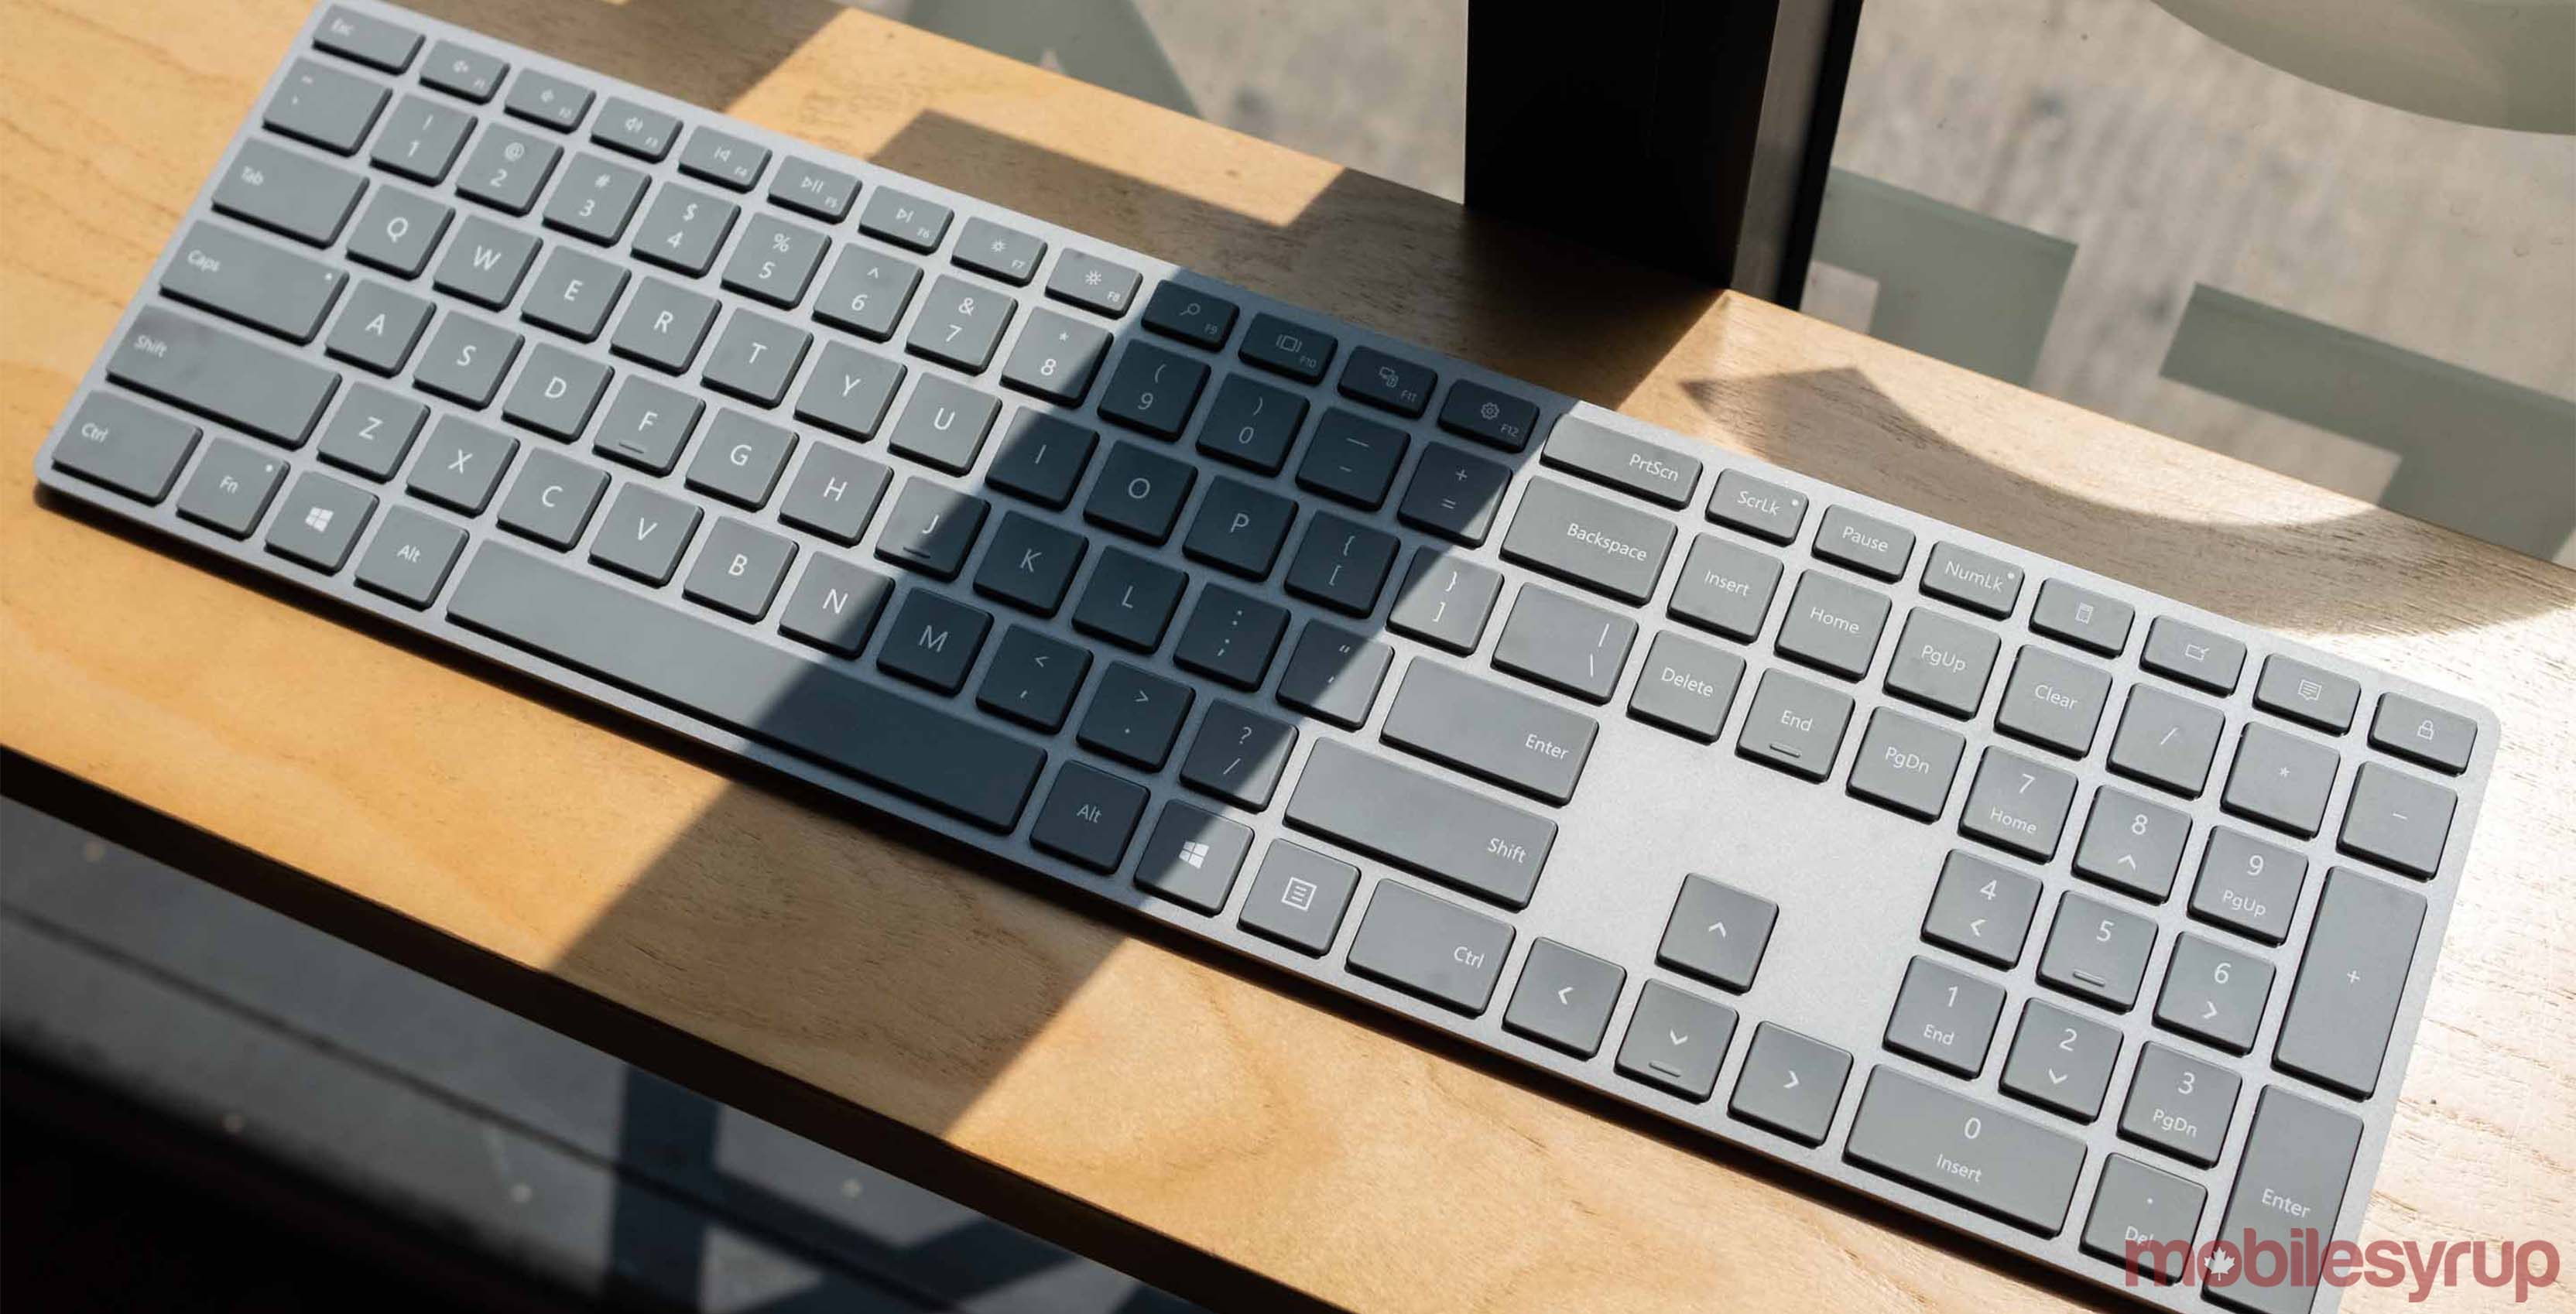 FCC filings suggest new Surface Mouse, Keyboard could be on